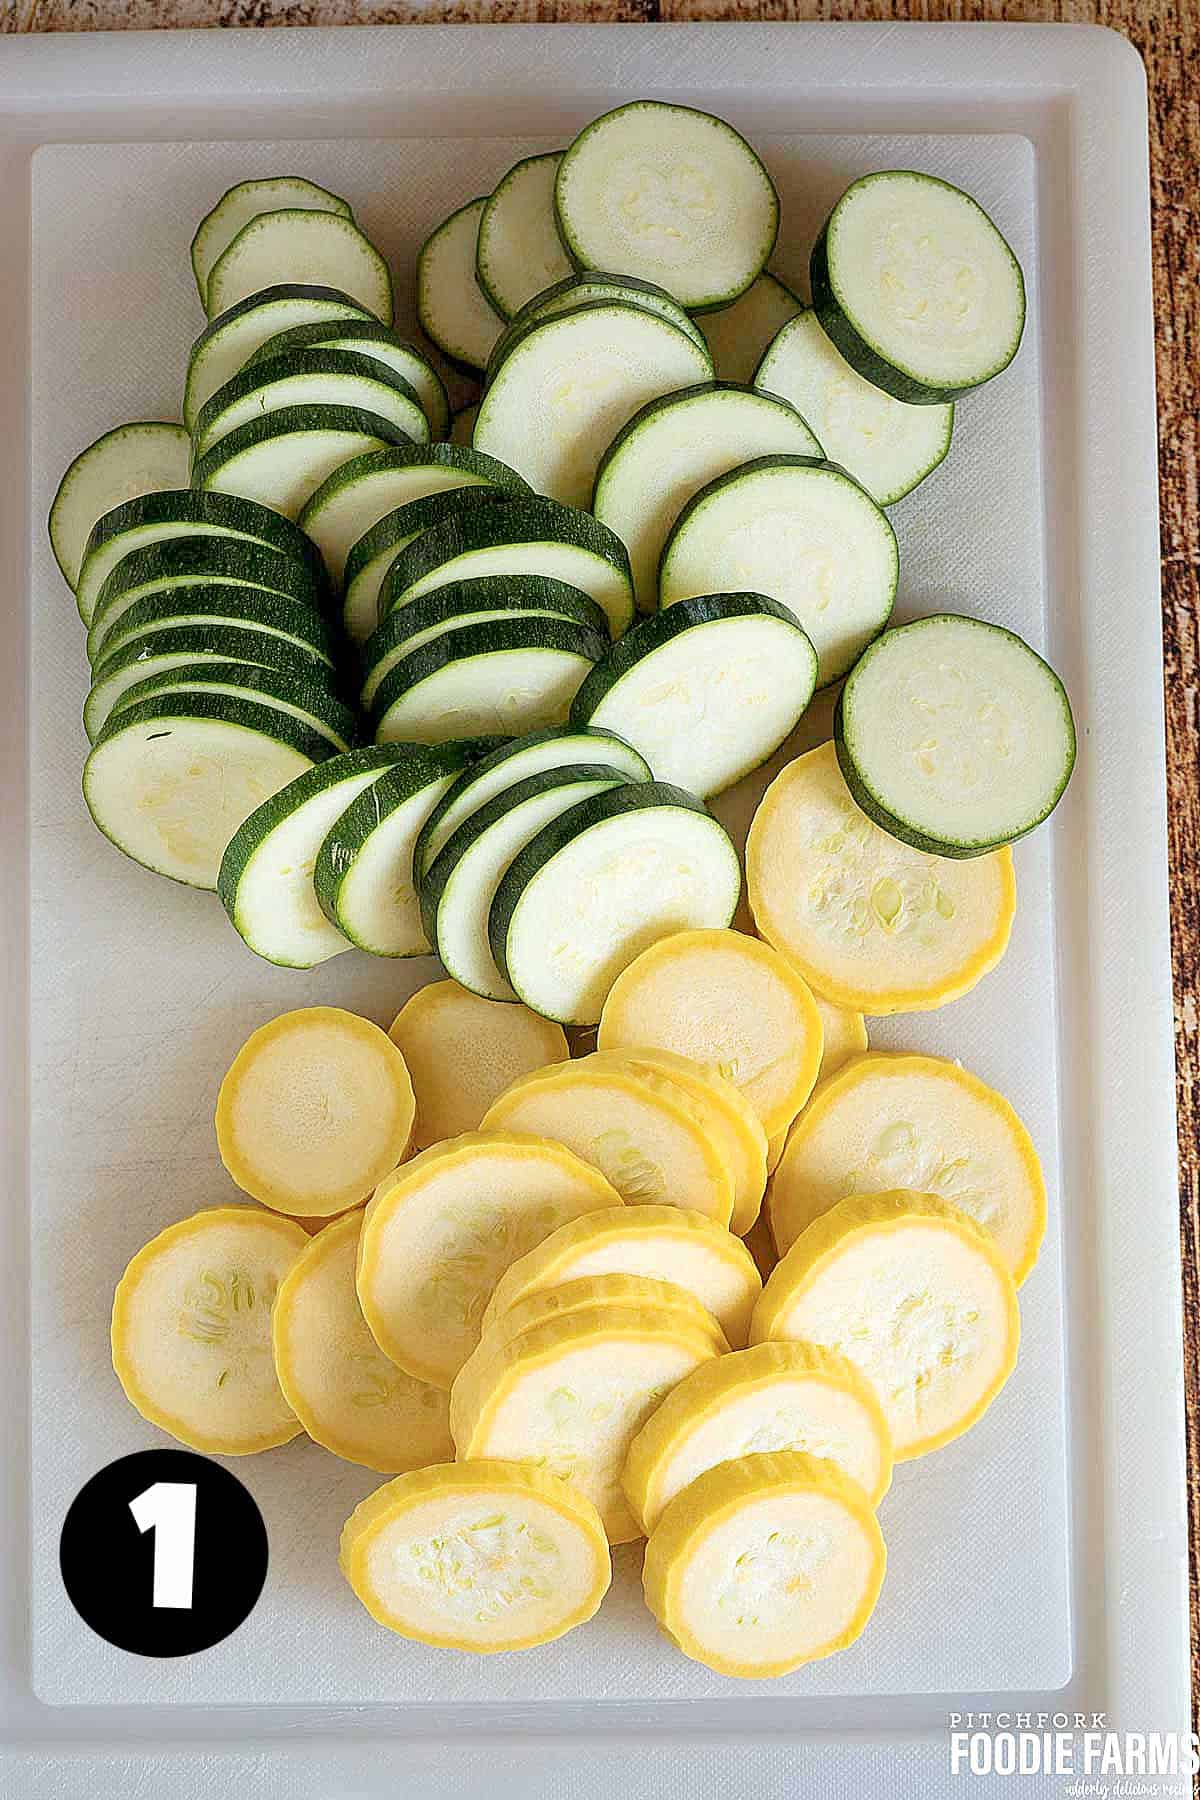 Sliced zucchini and yellow summer squash on a cutting board.